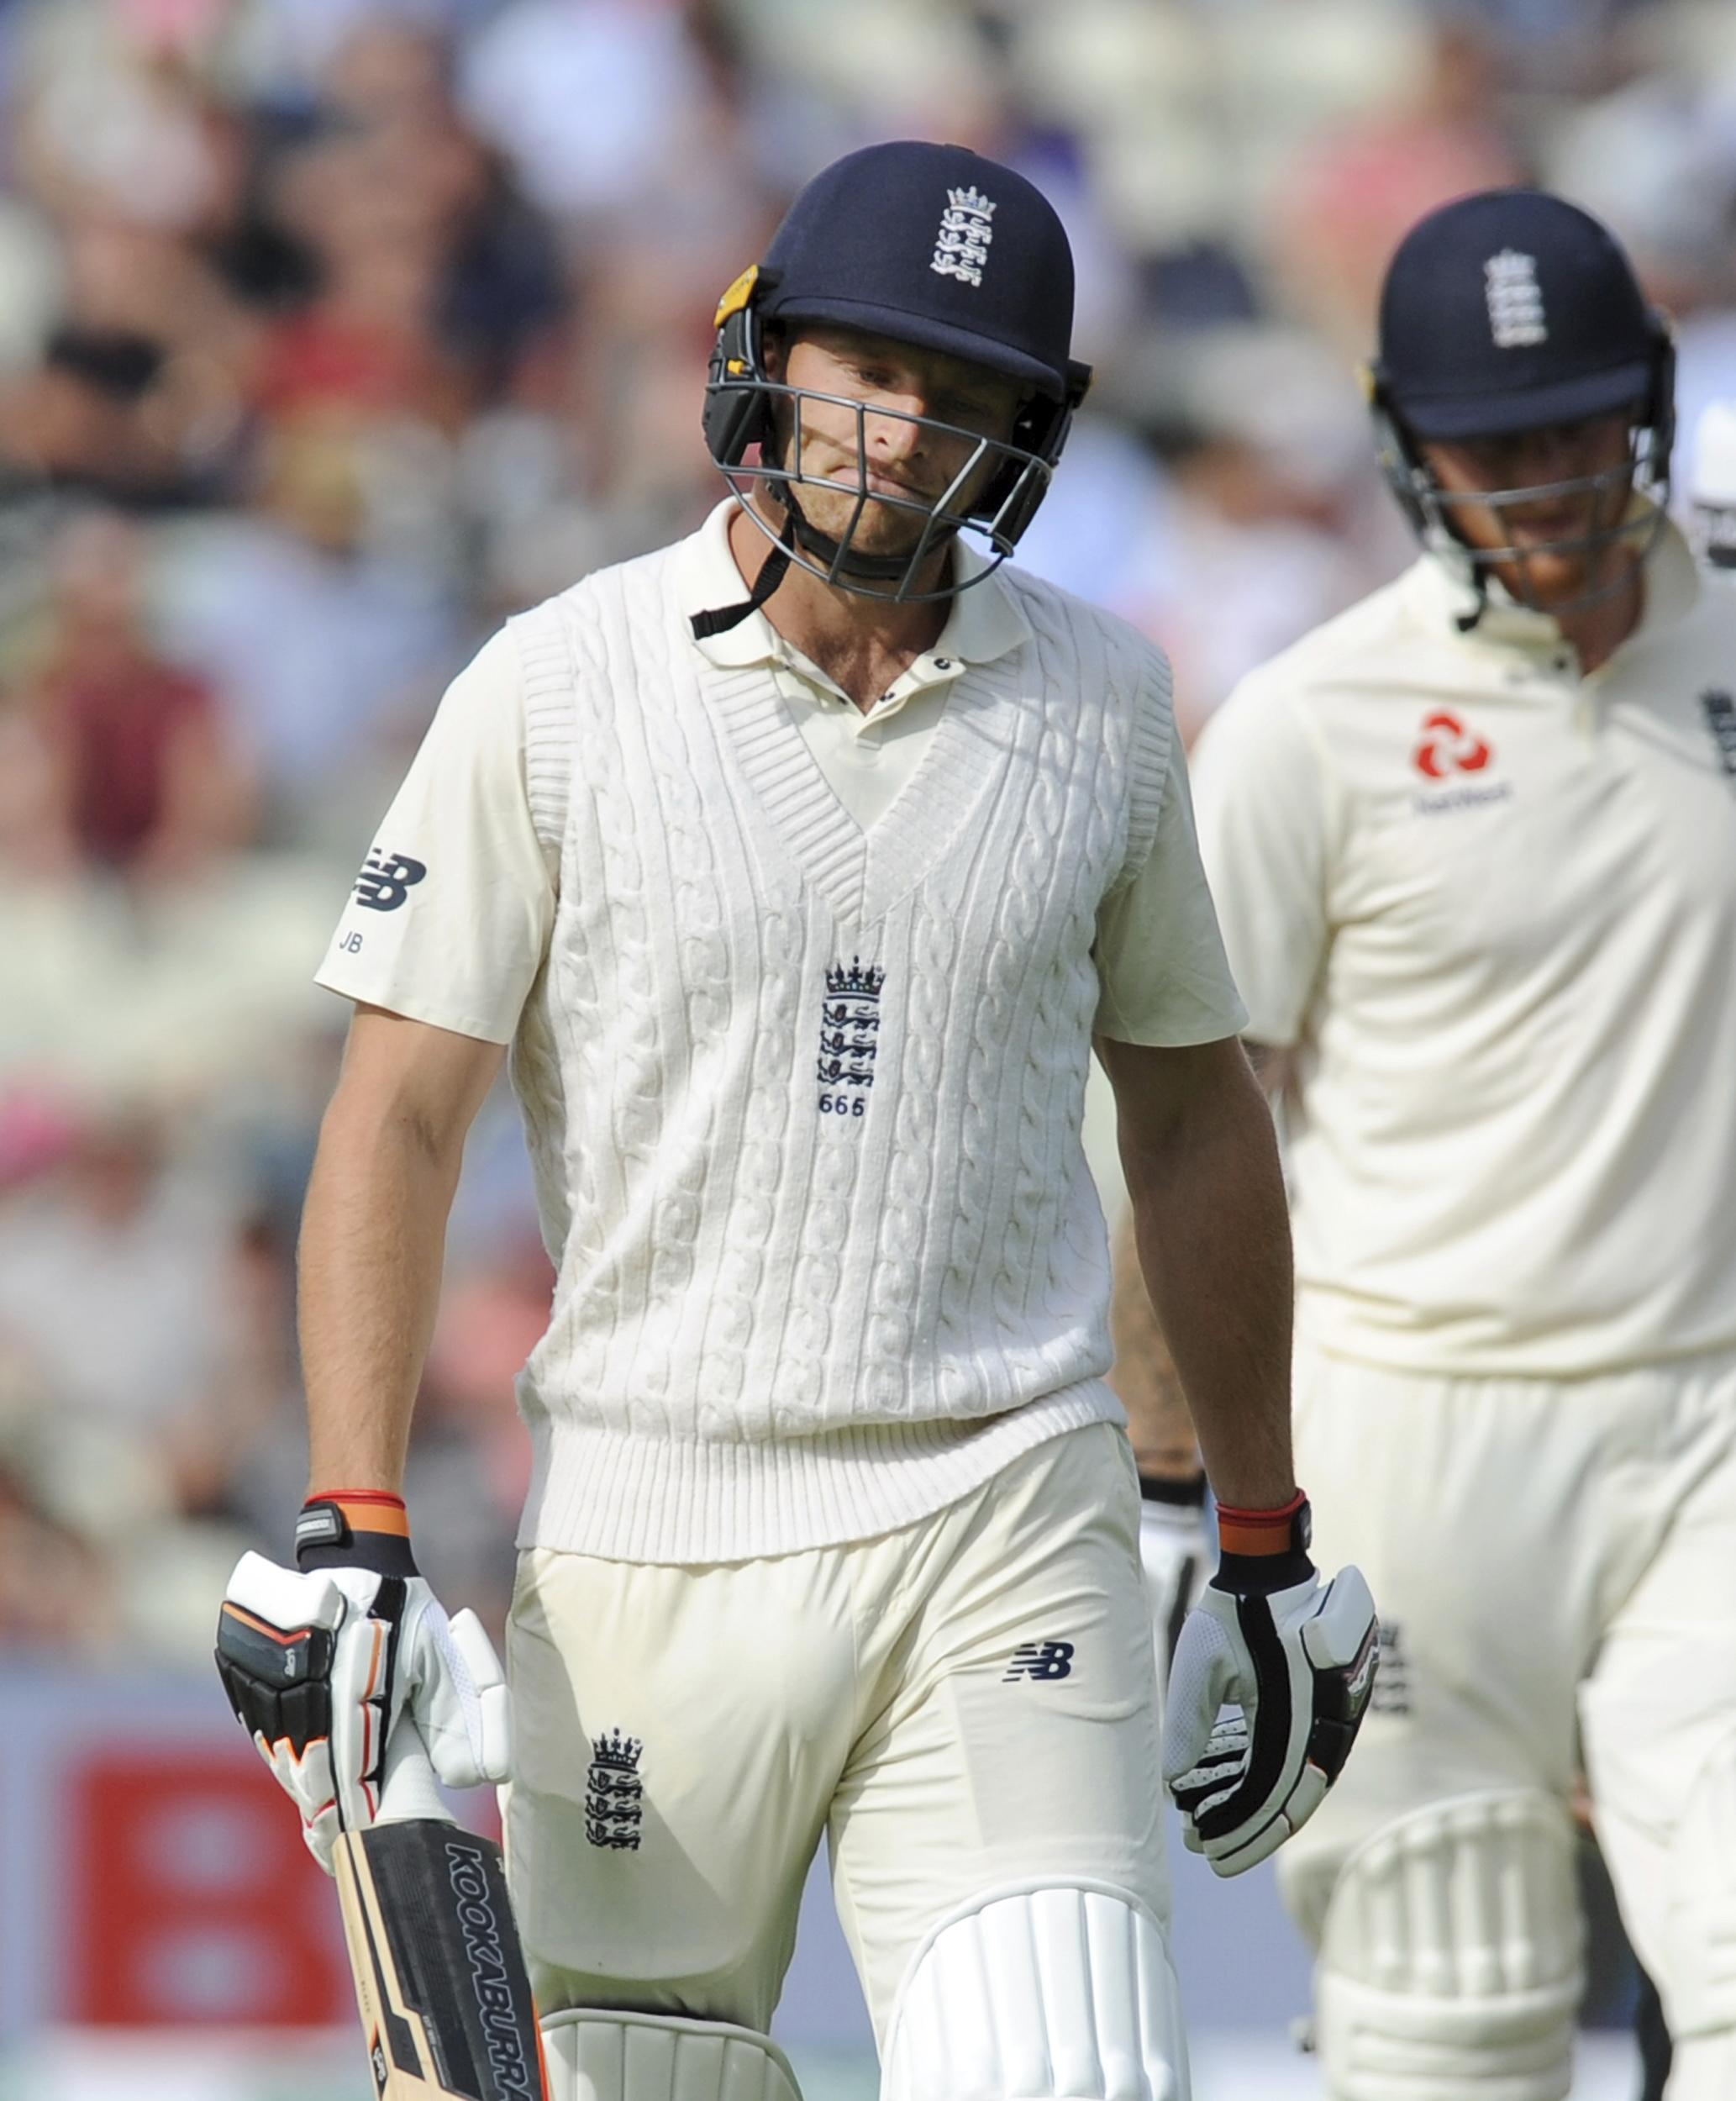 Jos Buttler lasted just two balls before he was dismissed for a duck as England collapsed following a steady start